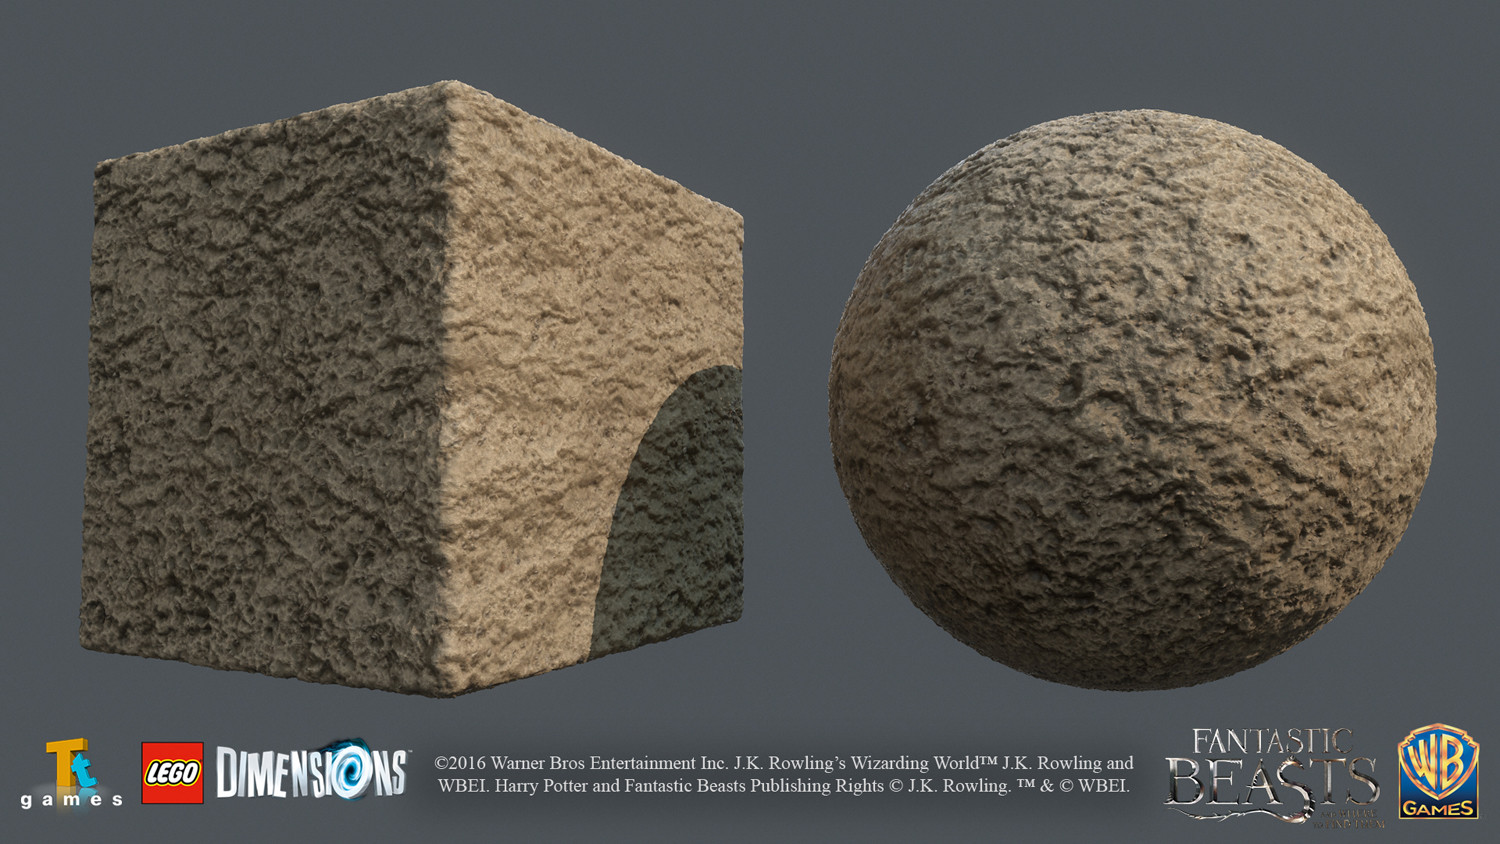 Lumpy Sand - Mix of Substance Painter, Photoshop and photosource